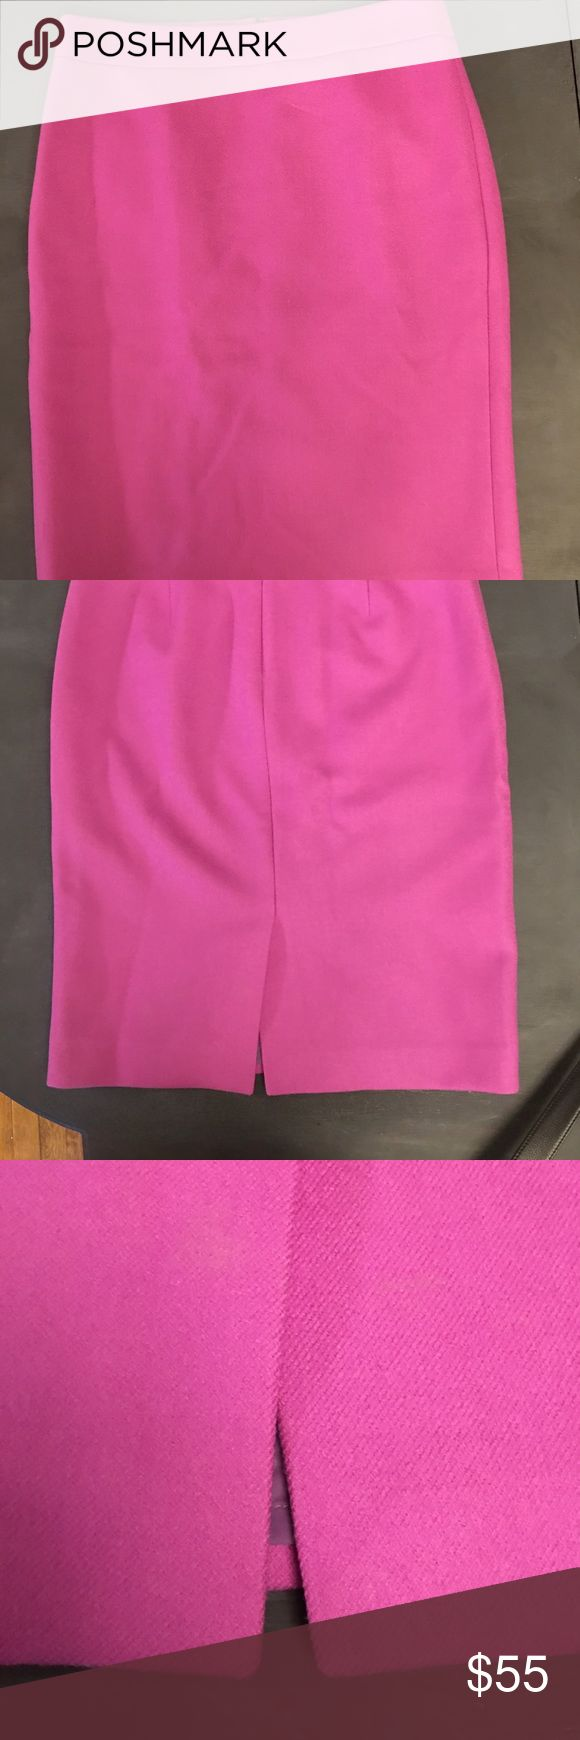 J. Crew fuchsia wool pencil skirt Absolutely gorgeous J. Crew fuchsia pencil skirt. In excellent condition! This skirt is made of 100% wool and it's very classy J. Crew Skirts Pencil